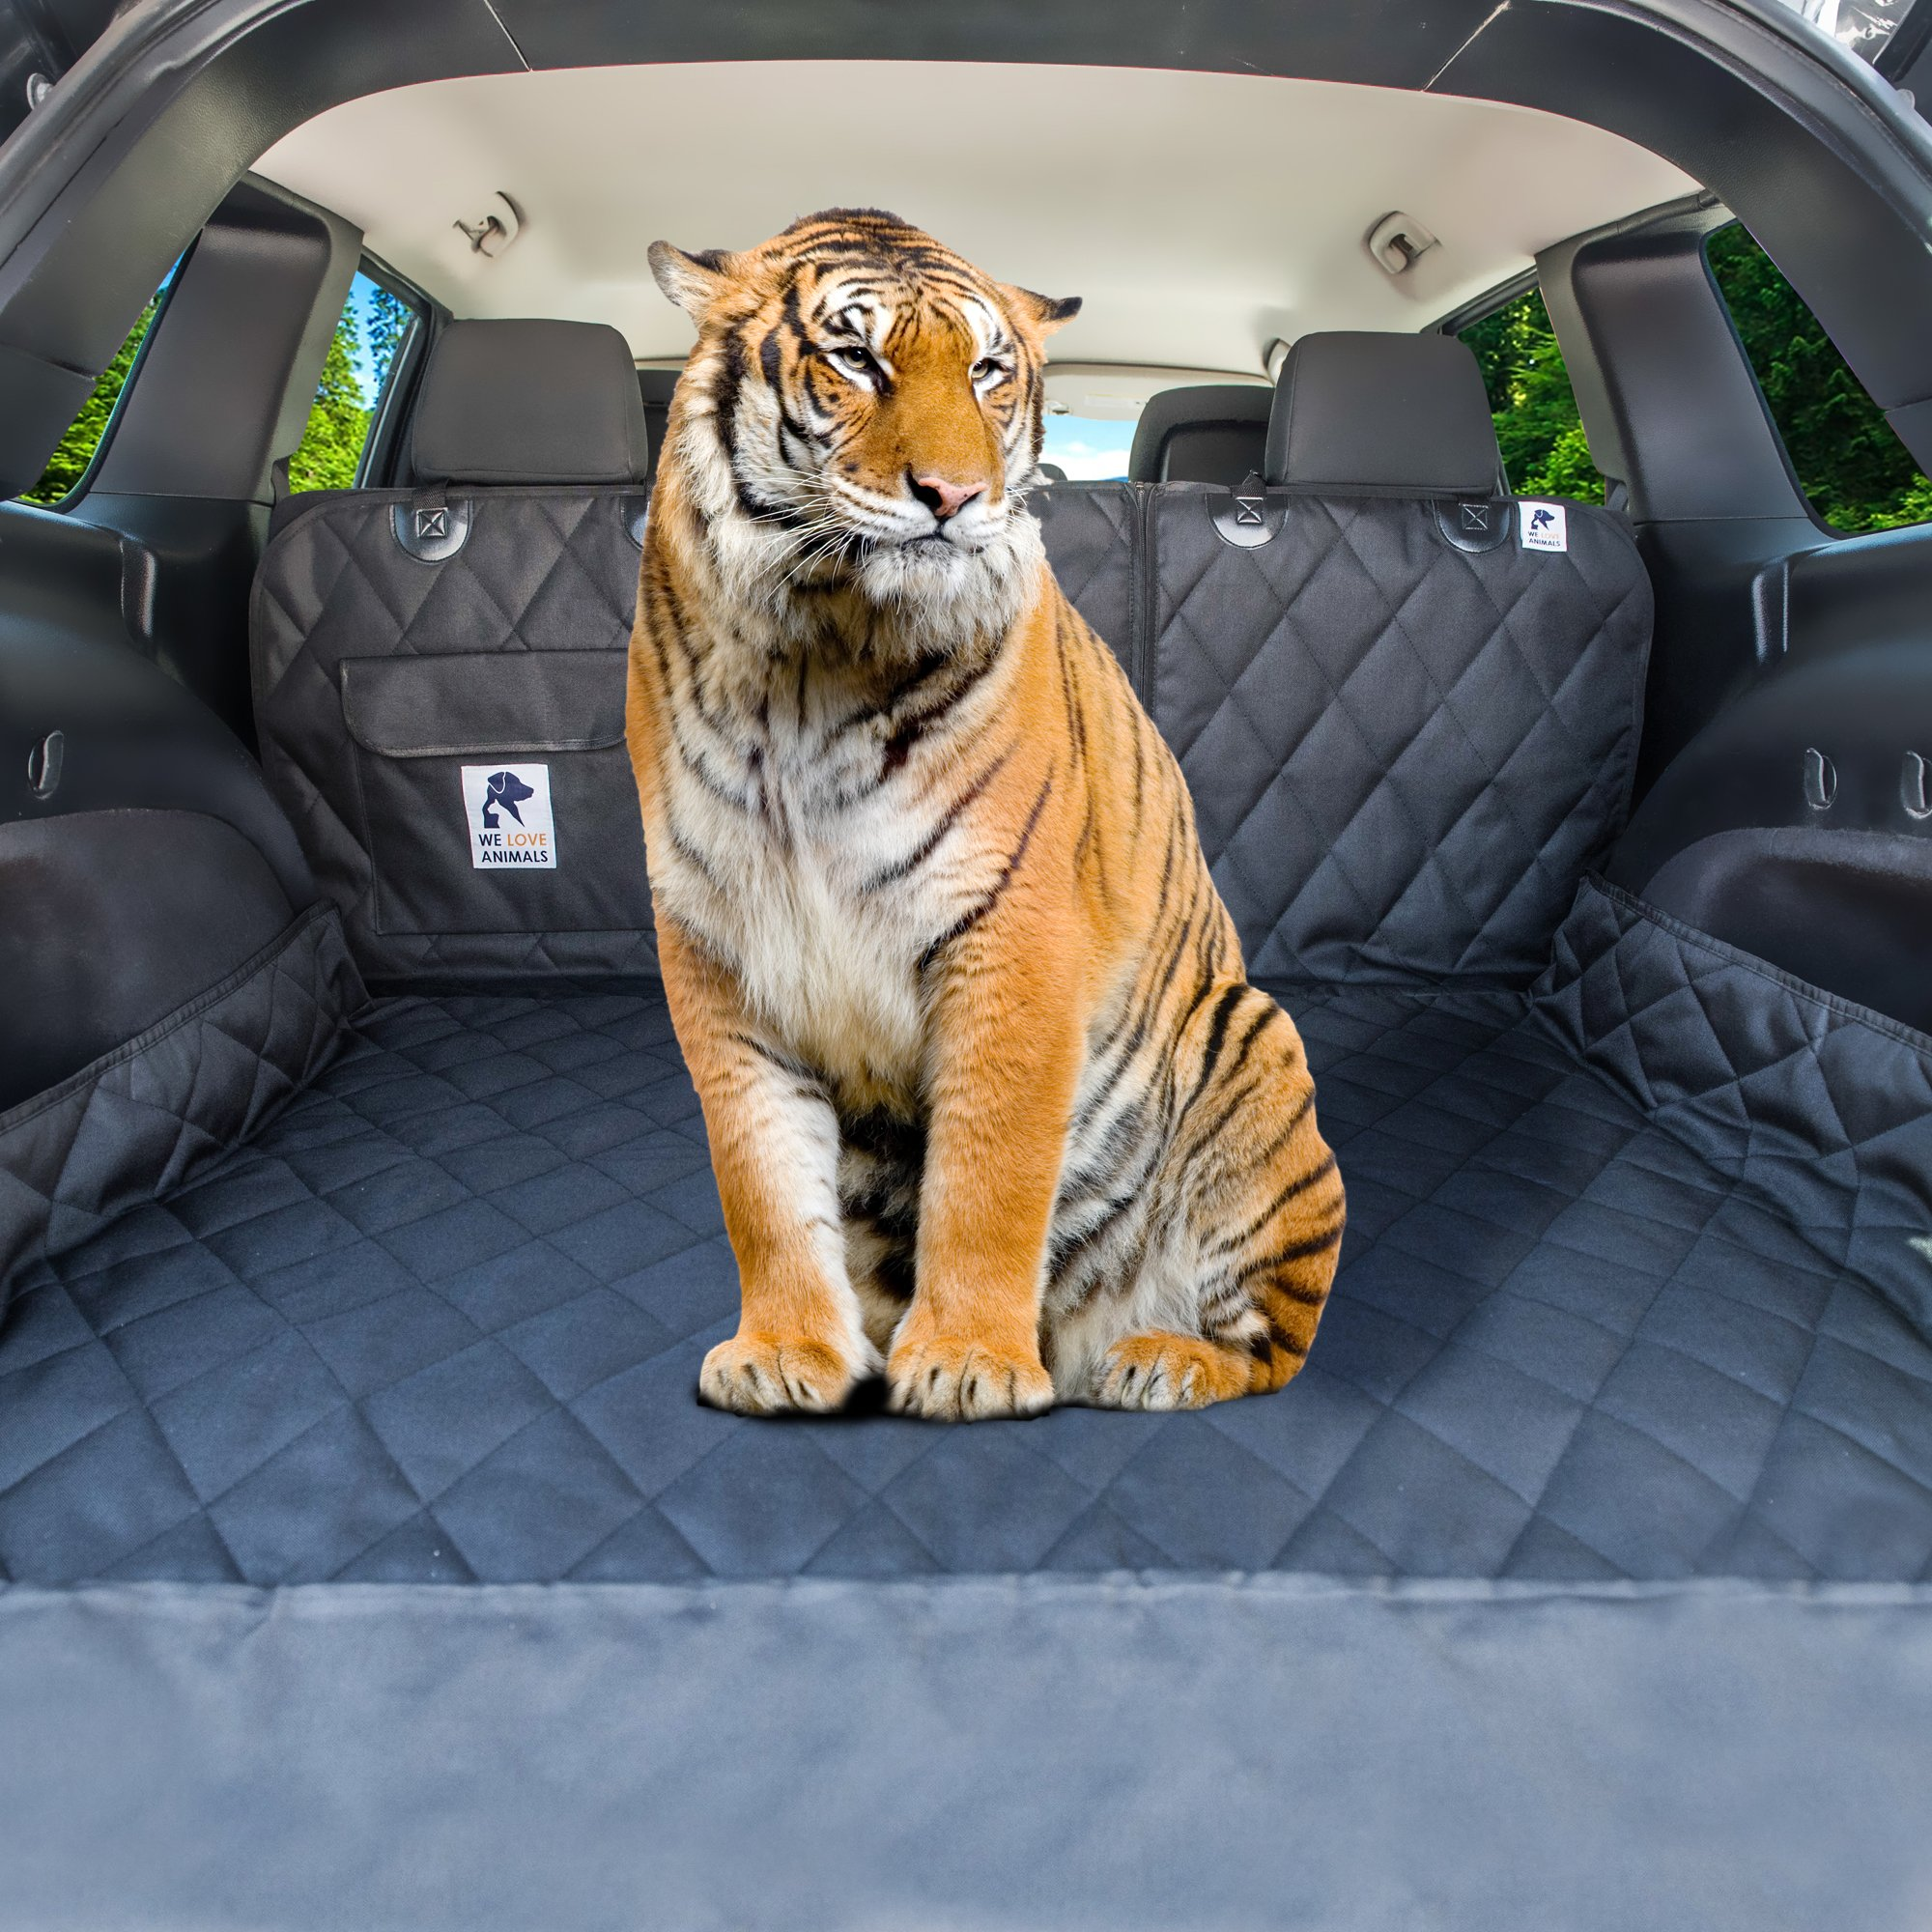 Dog Cargo Liner for SUV, Van, Truck & Jeep - Waterproof, Machine Washable, Nonslip Pet Seat Cover with Bumper Flap will keep your vehicle as clean as ever - XL, Universal Fit - BONUS Carry Bag by WE LOVE ANIMALS (Image #9)